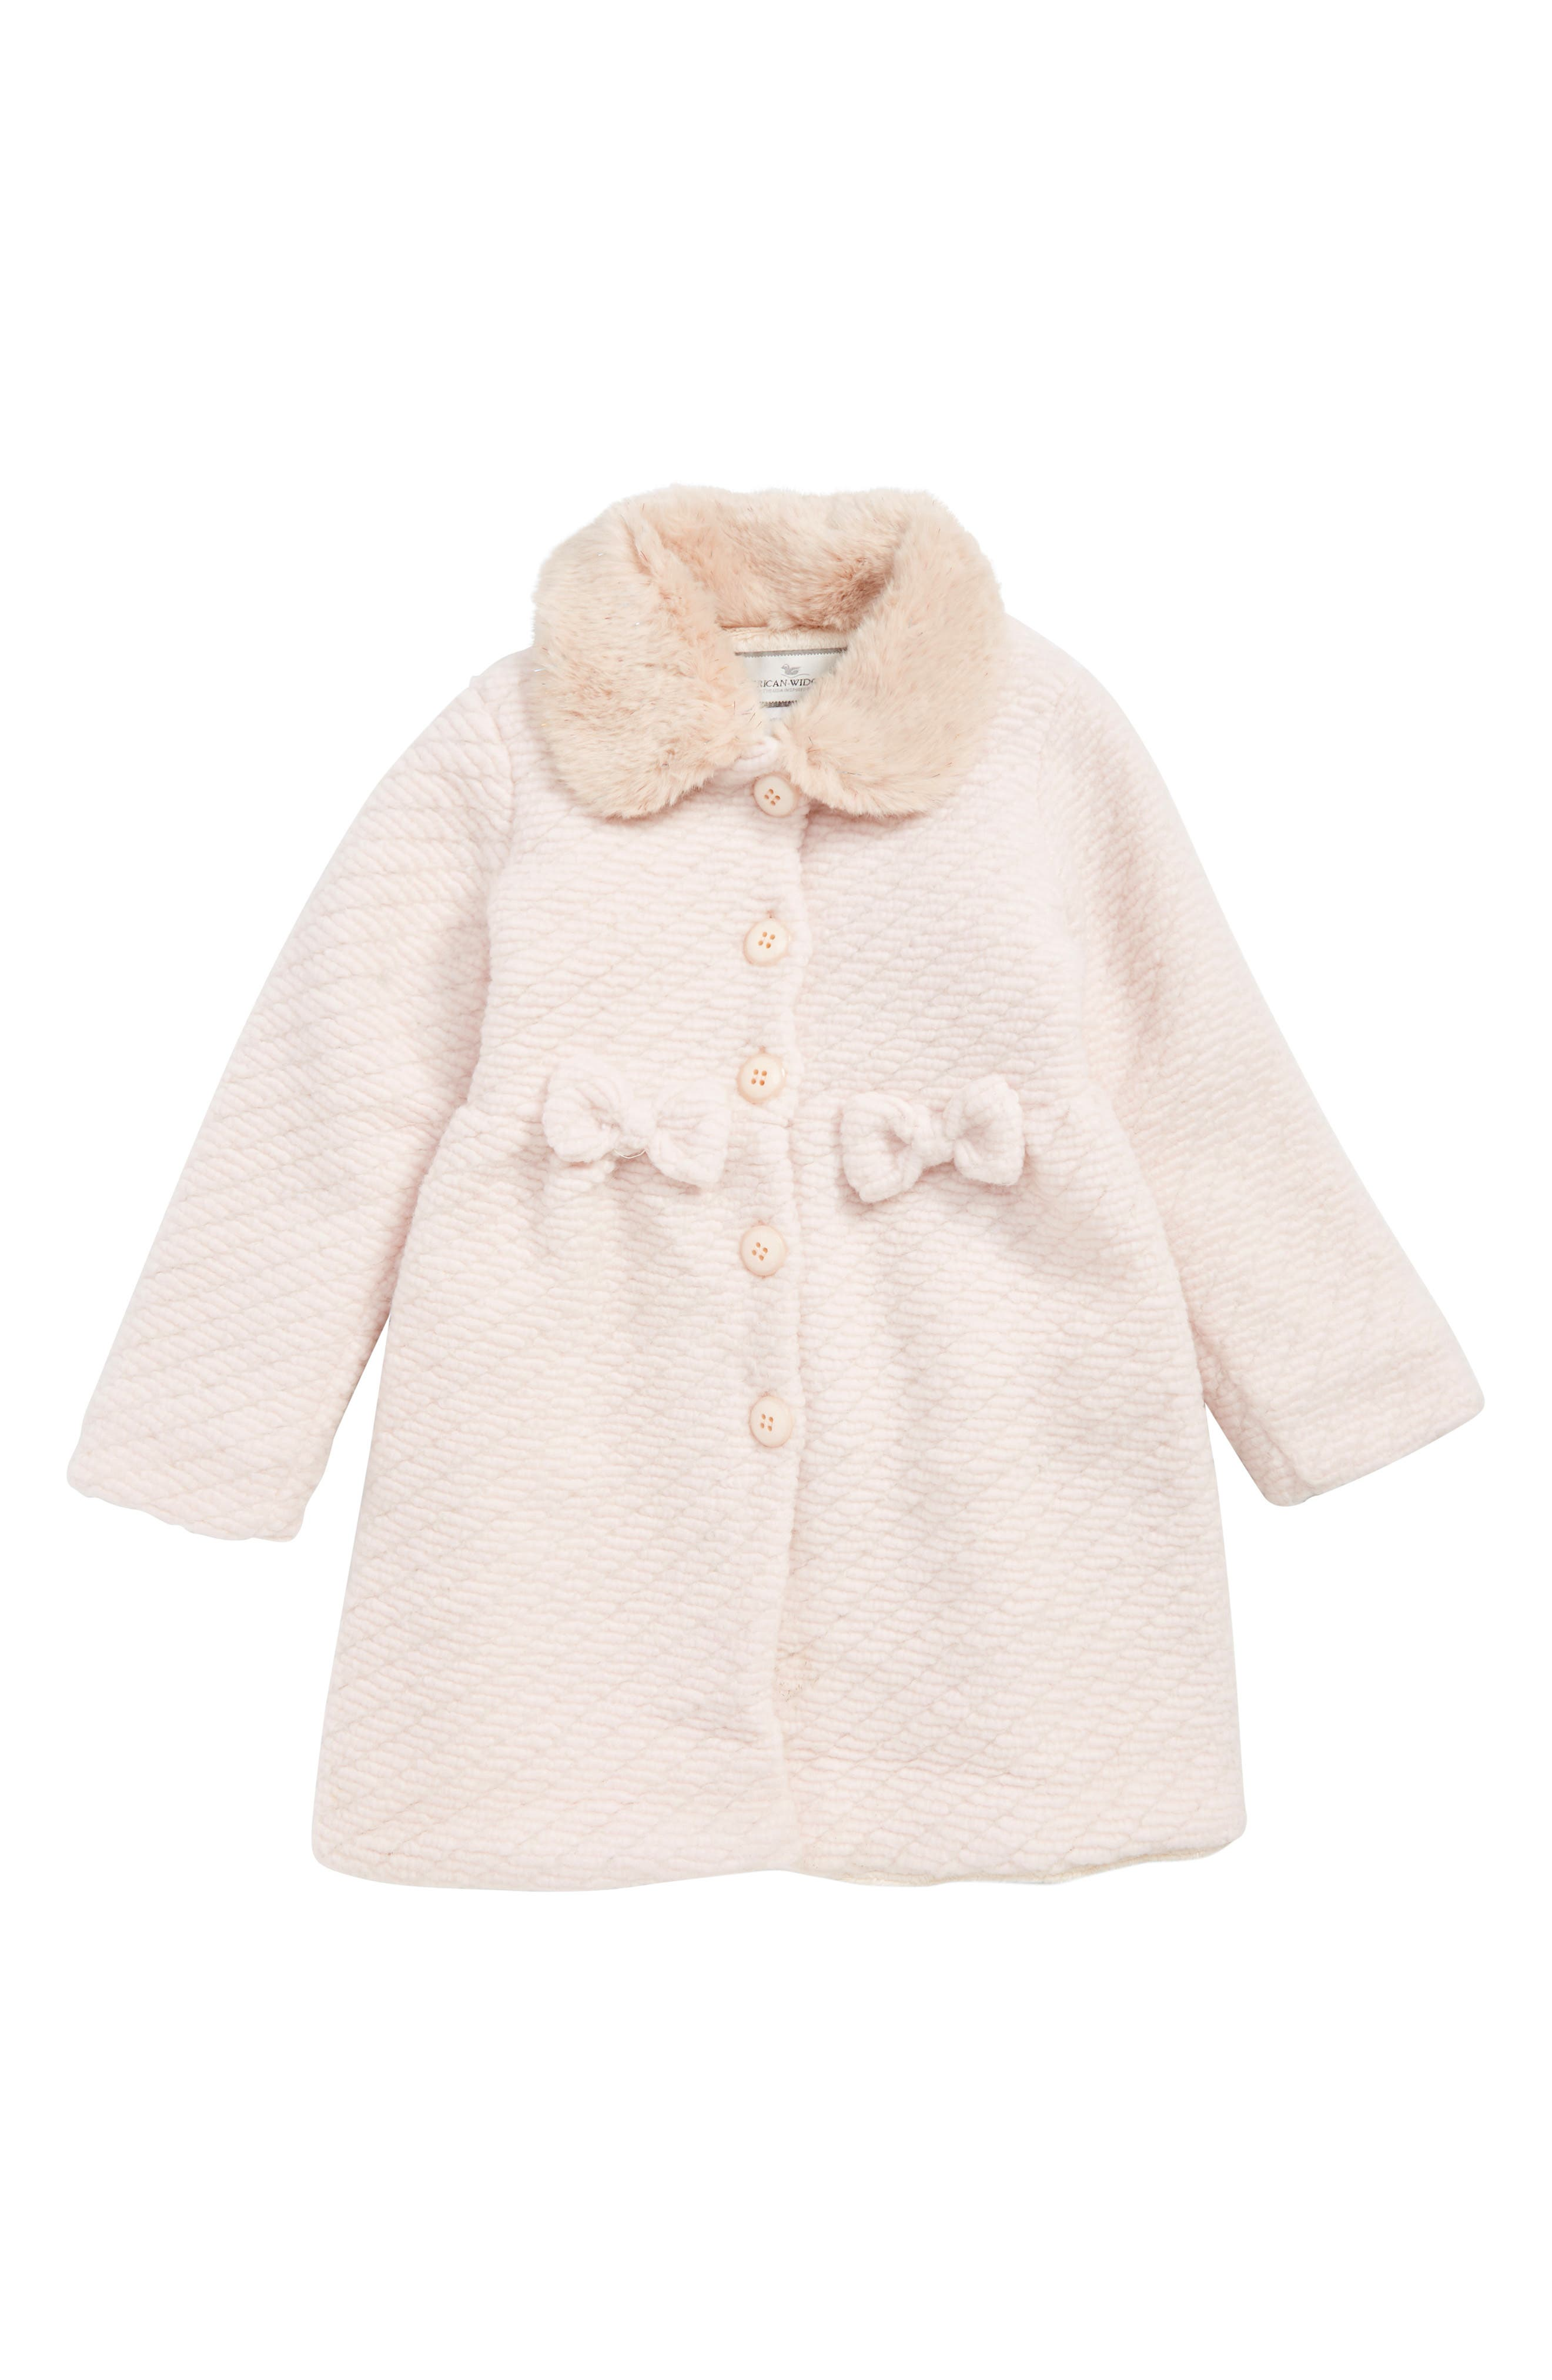 WIDGEON, Faux Fur Collar Coat, Main thumbnail 1, color, PINK TWILL